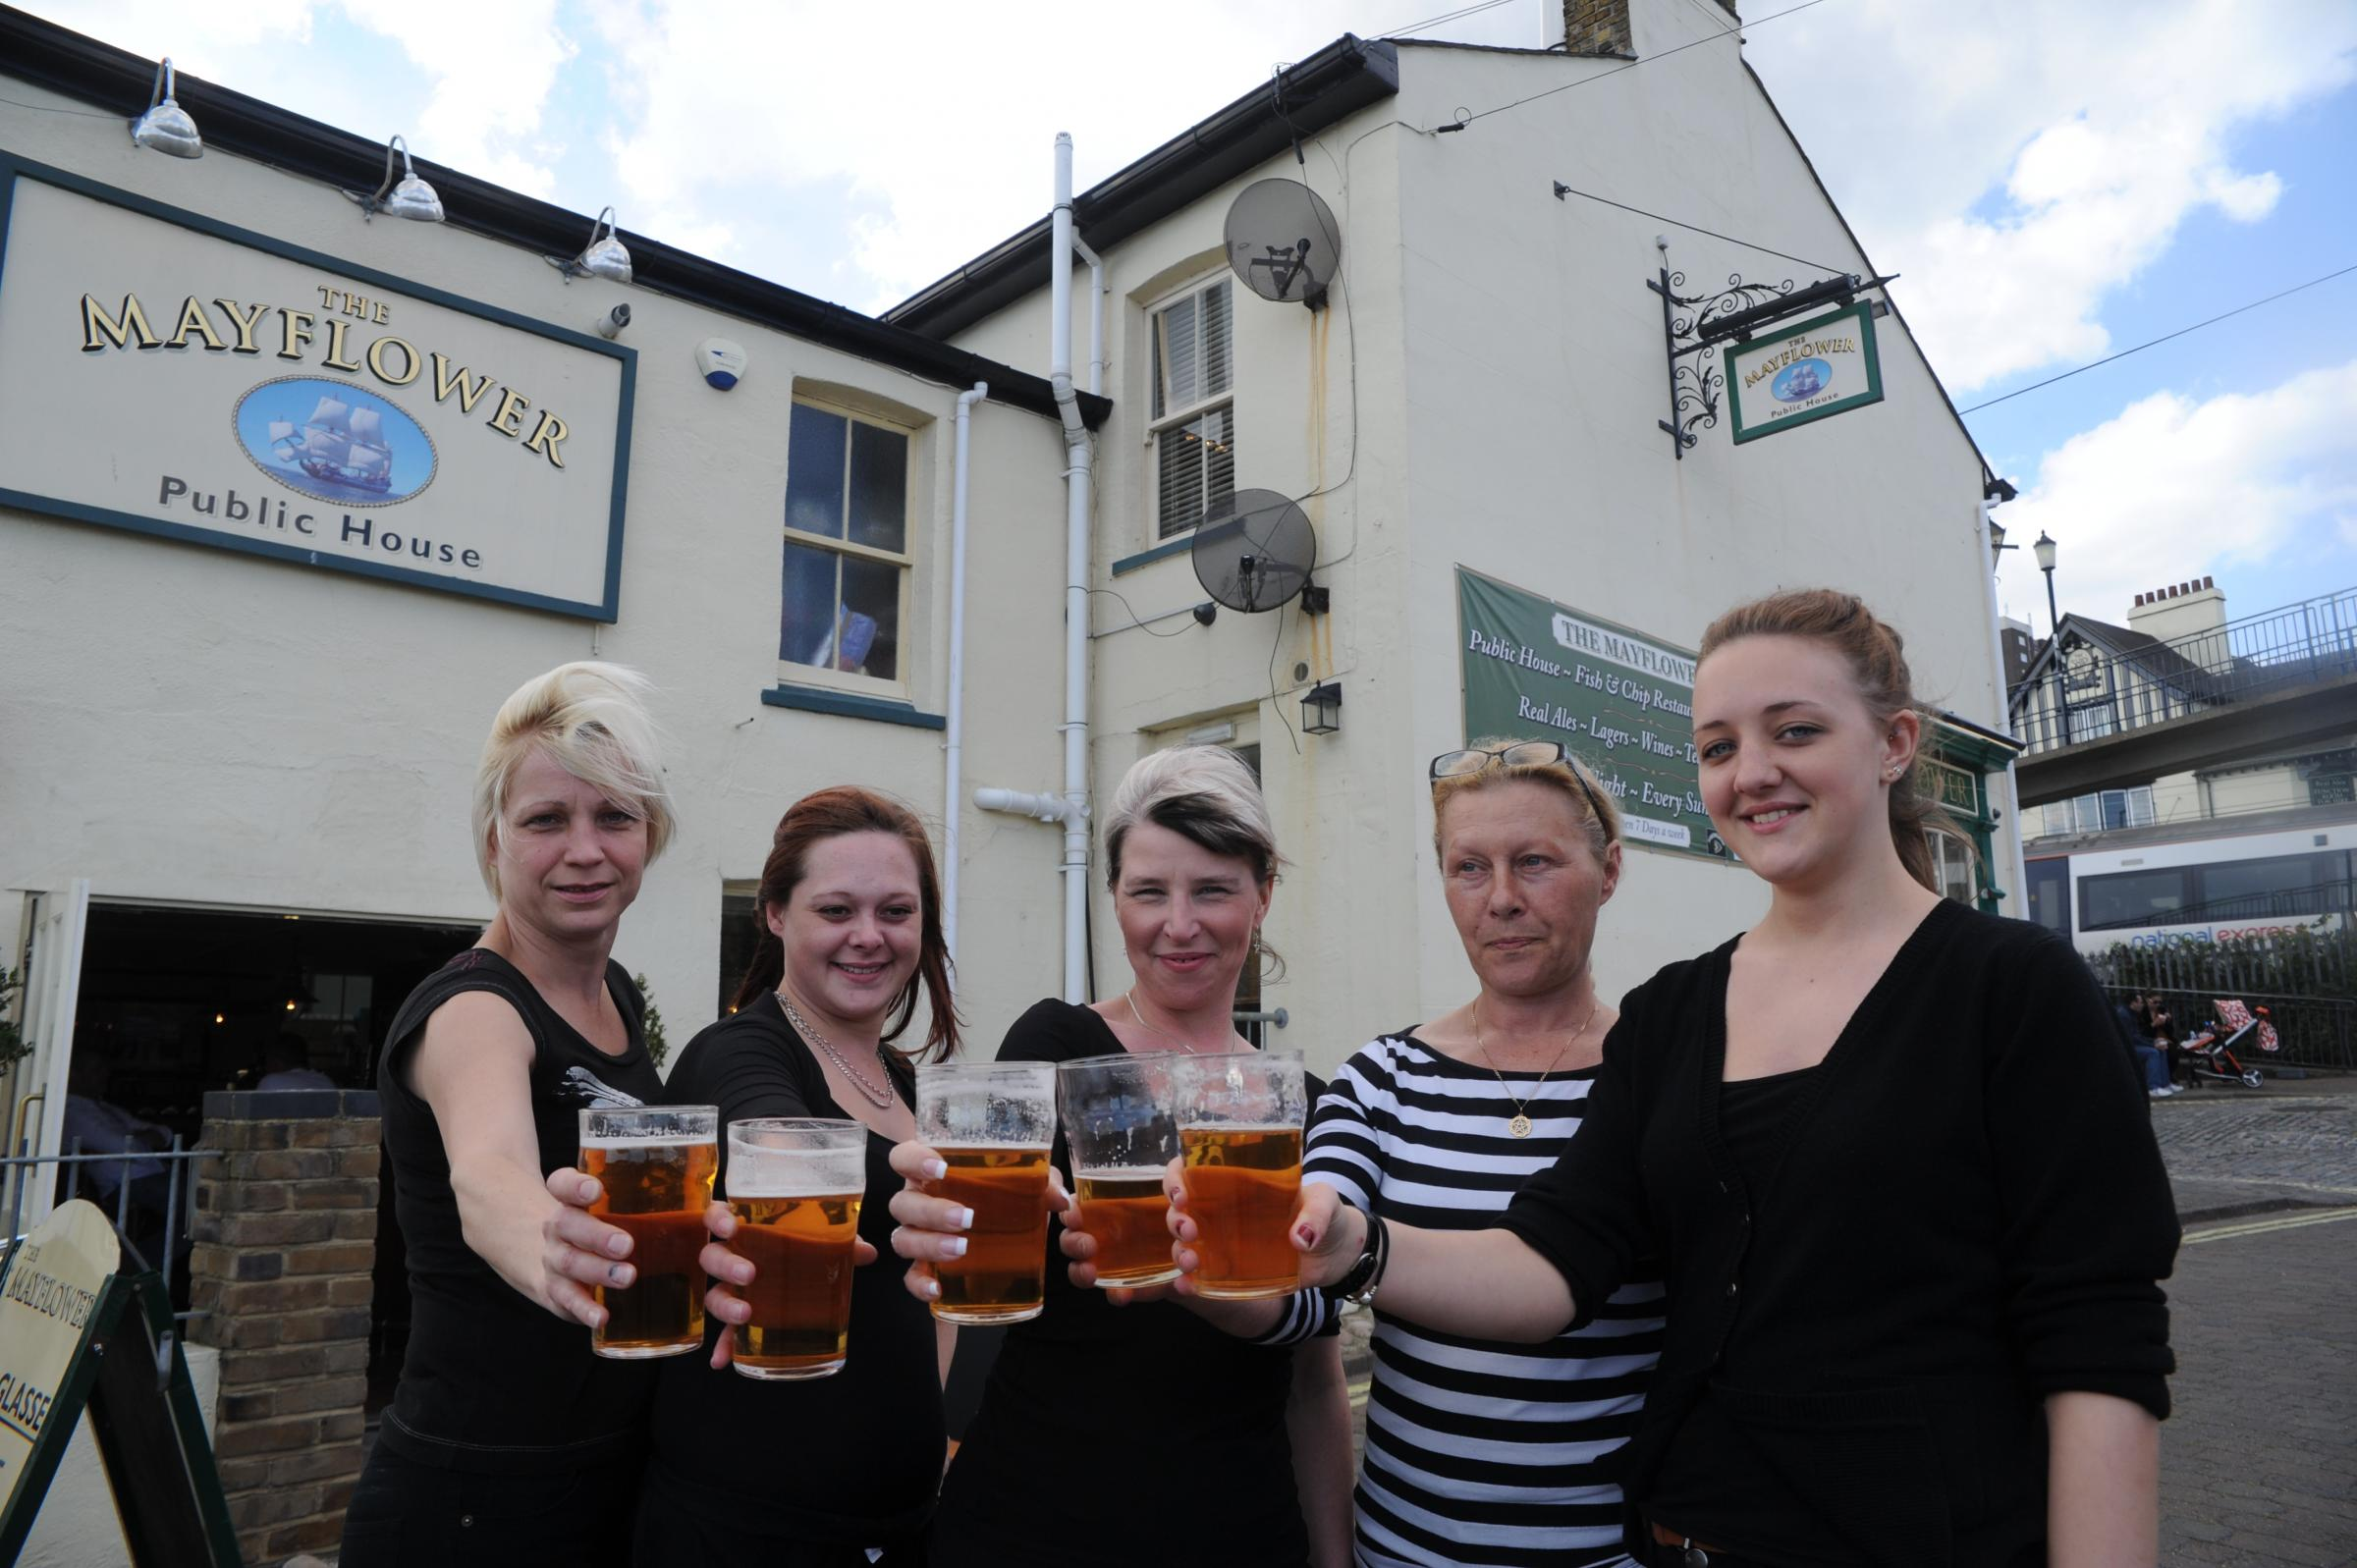 Celebration time – left to right, Tanya Hollington, Amy Fry, Shelly Howlett, Julie Reeves and Suzie Kadur of the Mayflower